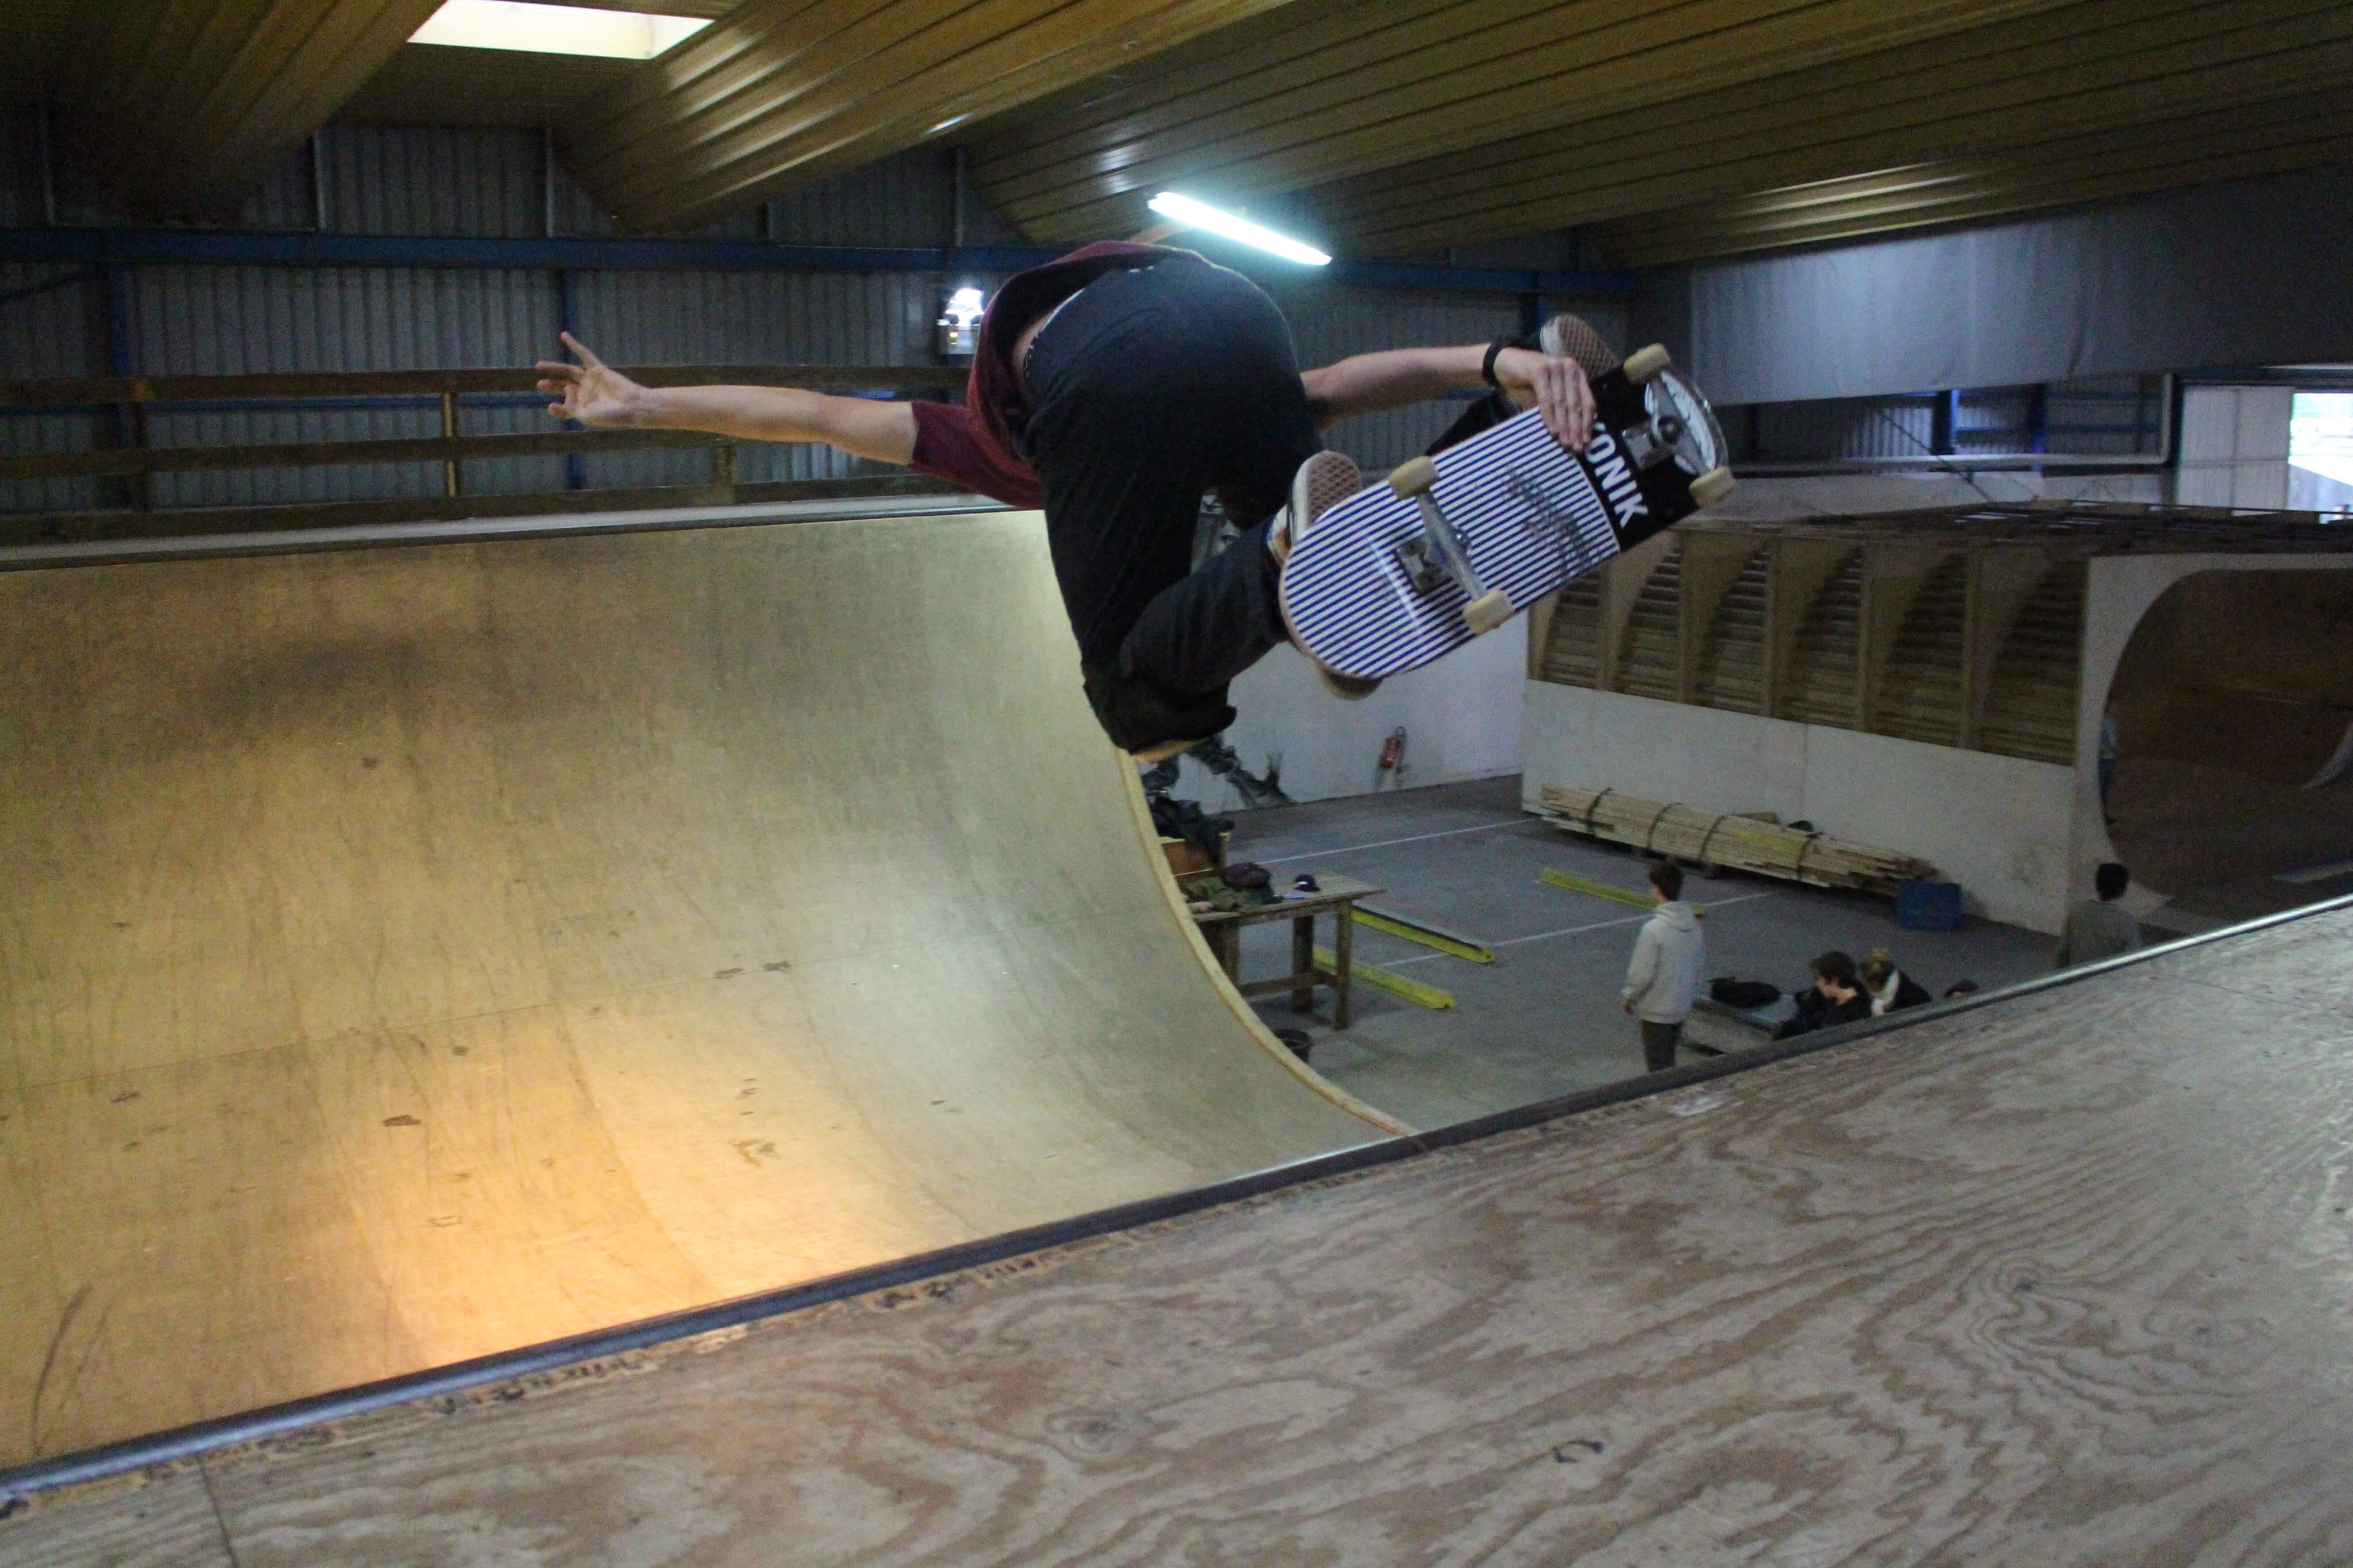 Bs Air in Darwin by Come Reau